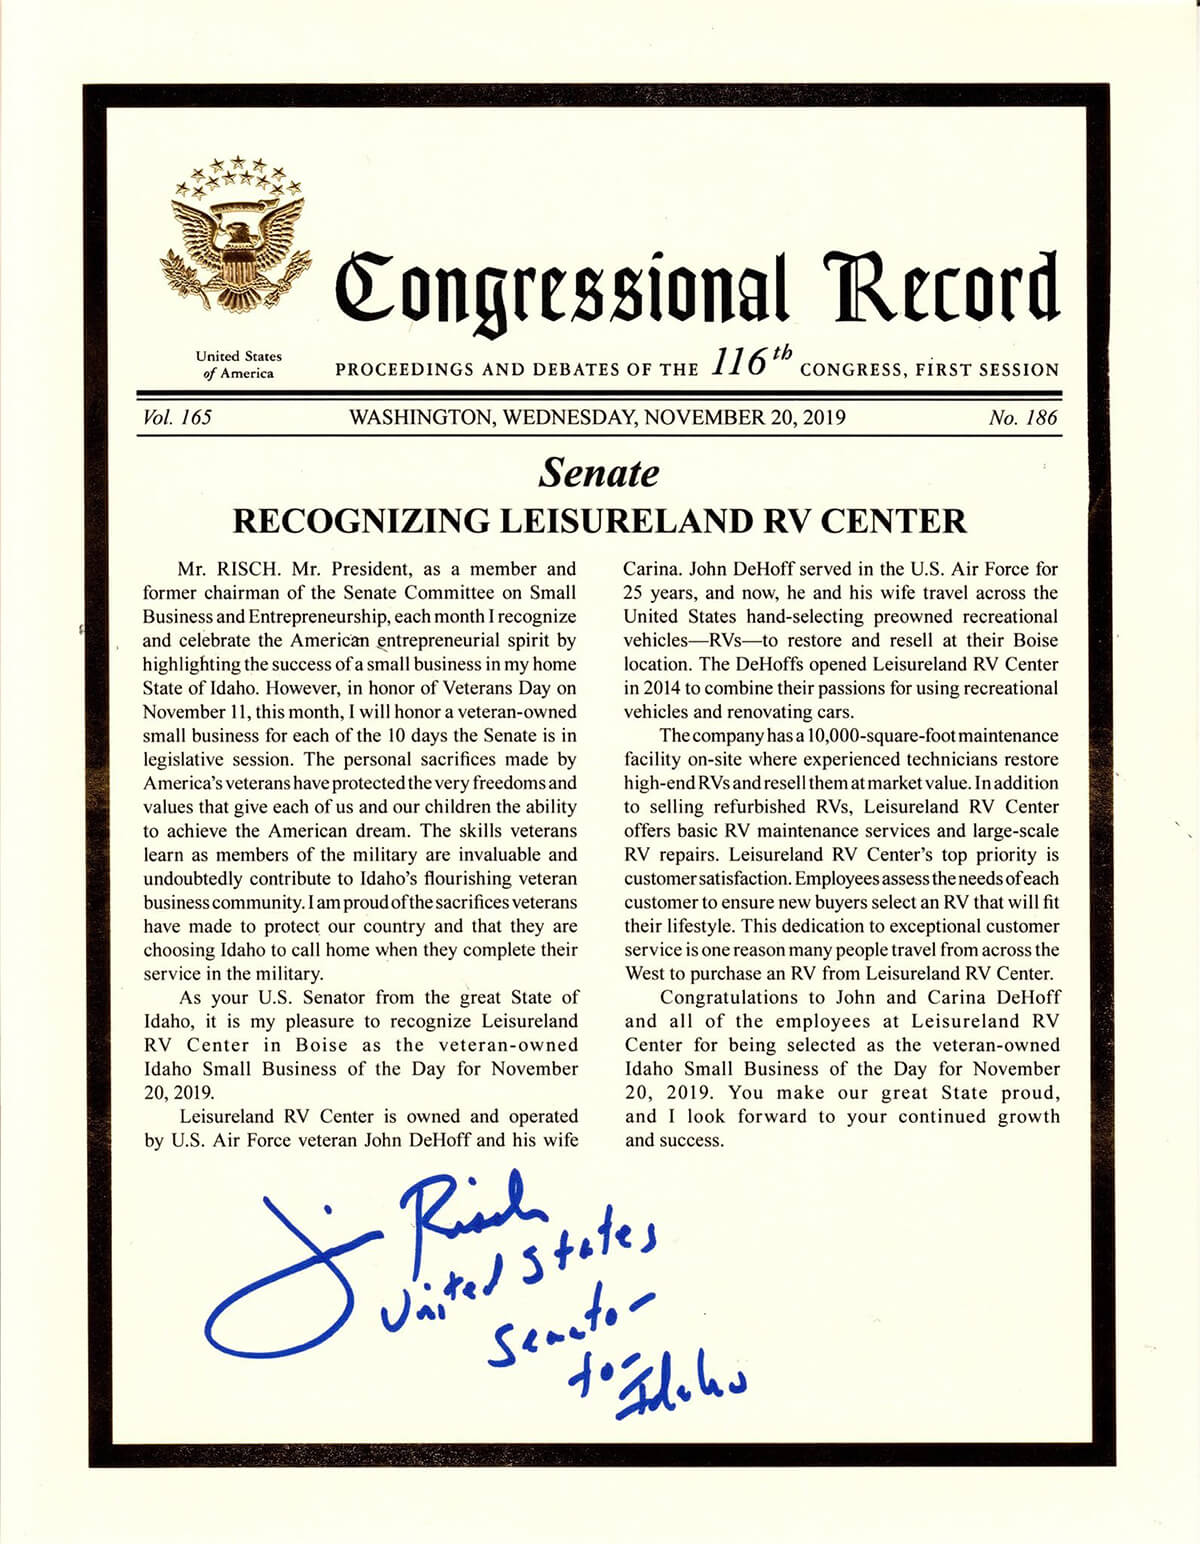 Congressional award from the United States senetor for Idaho